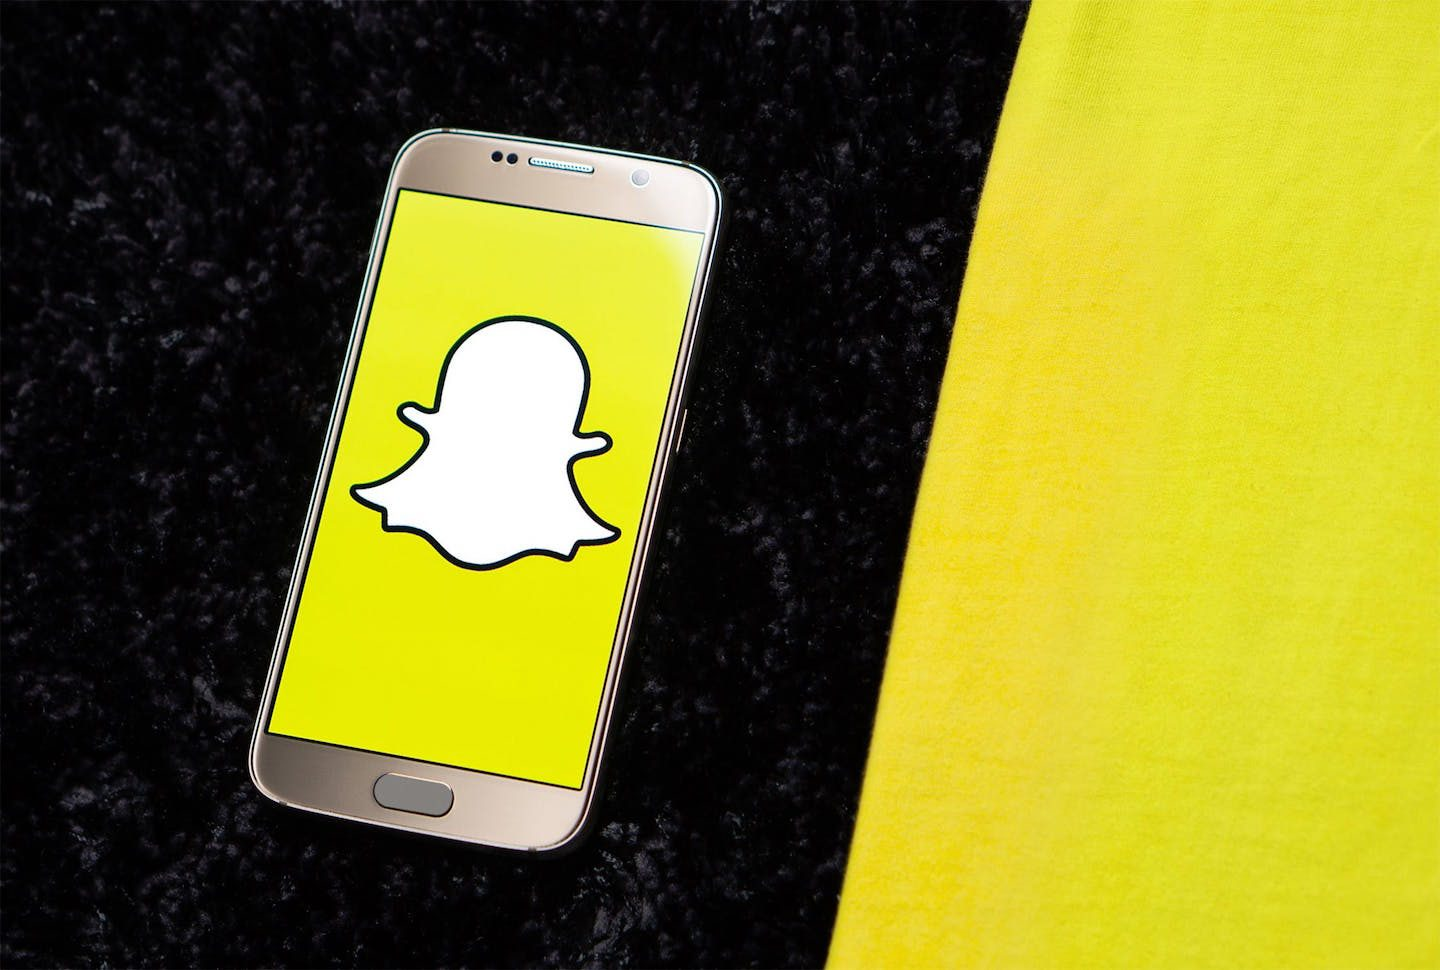 Snap shares sink as Snapchat redesign weighs on results